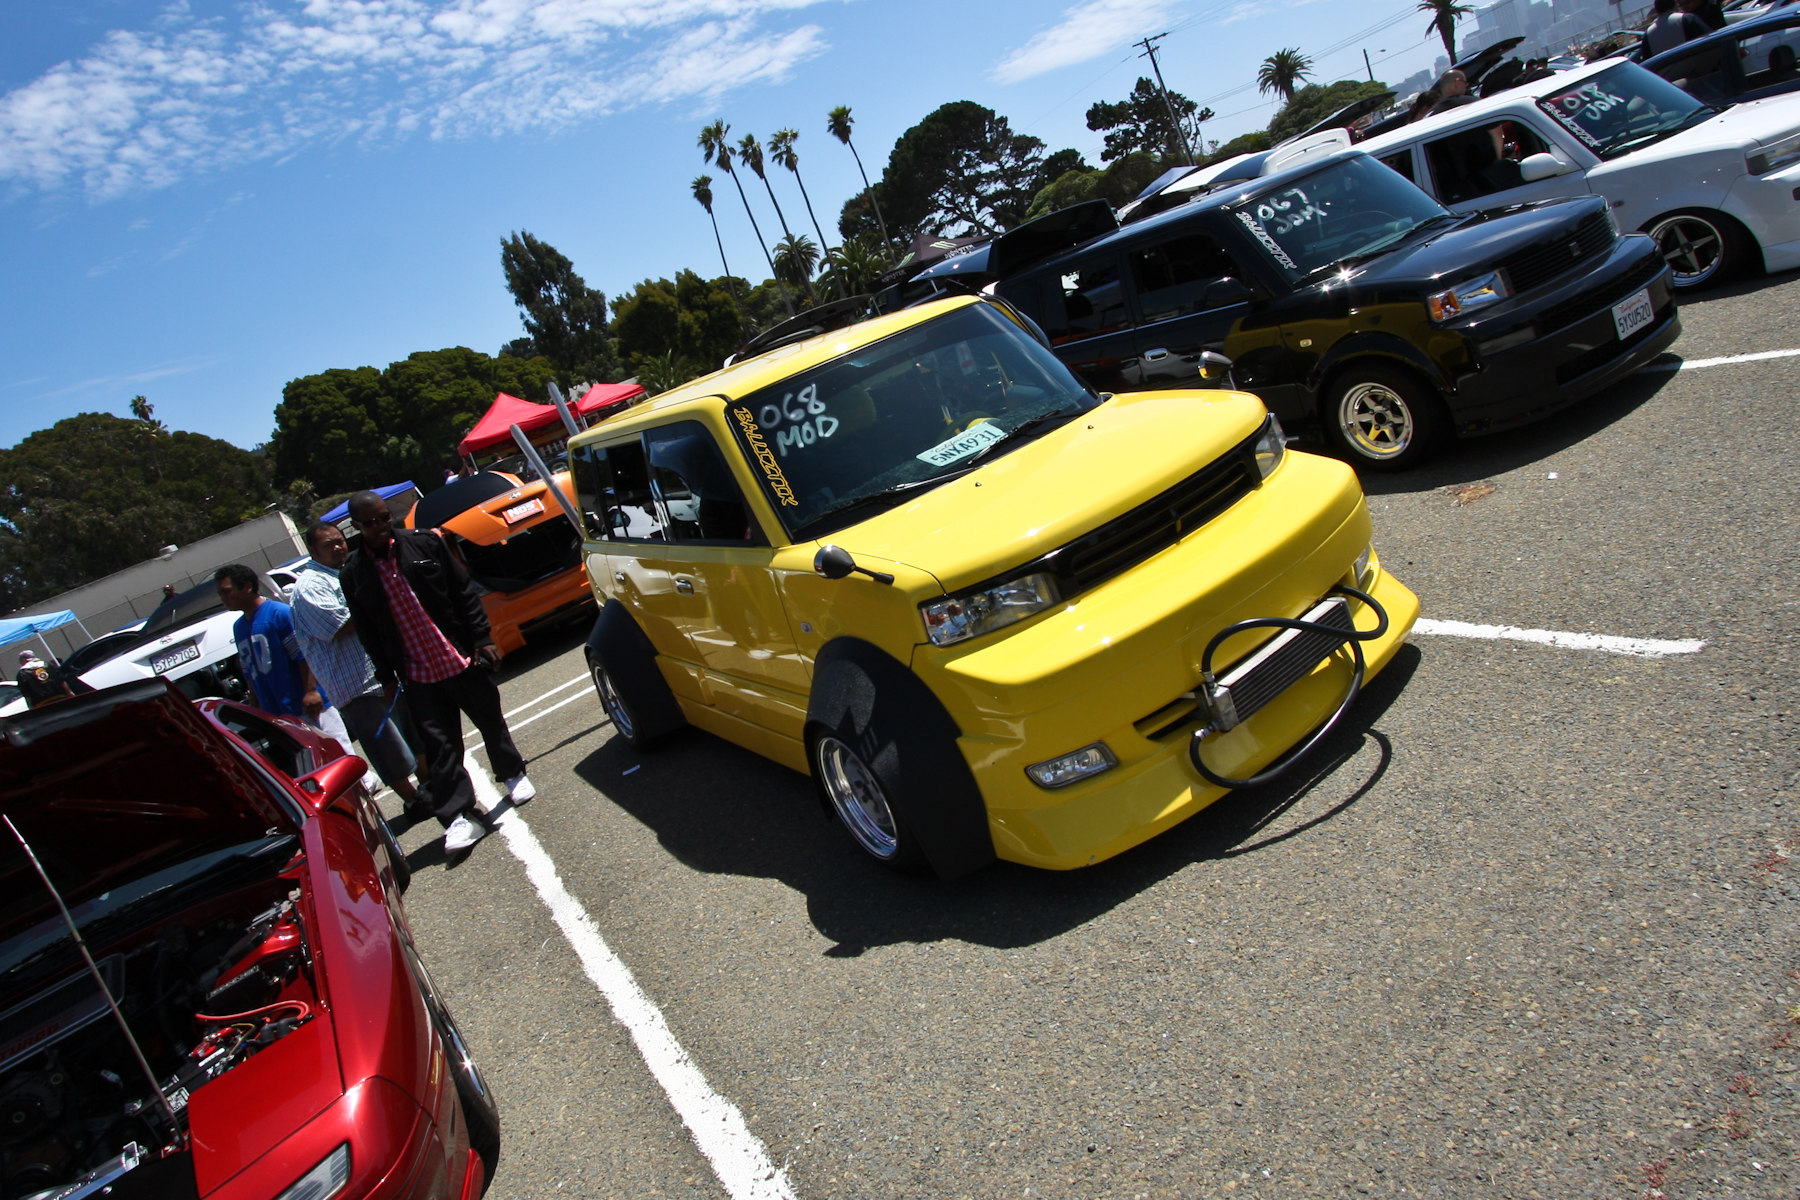 James' Scion xB